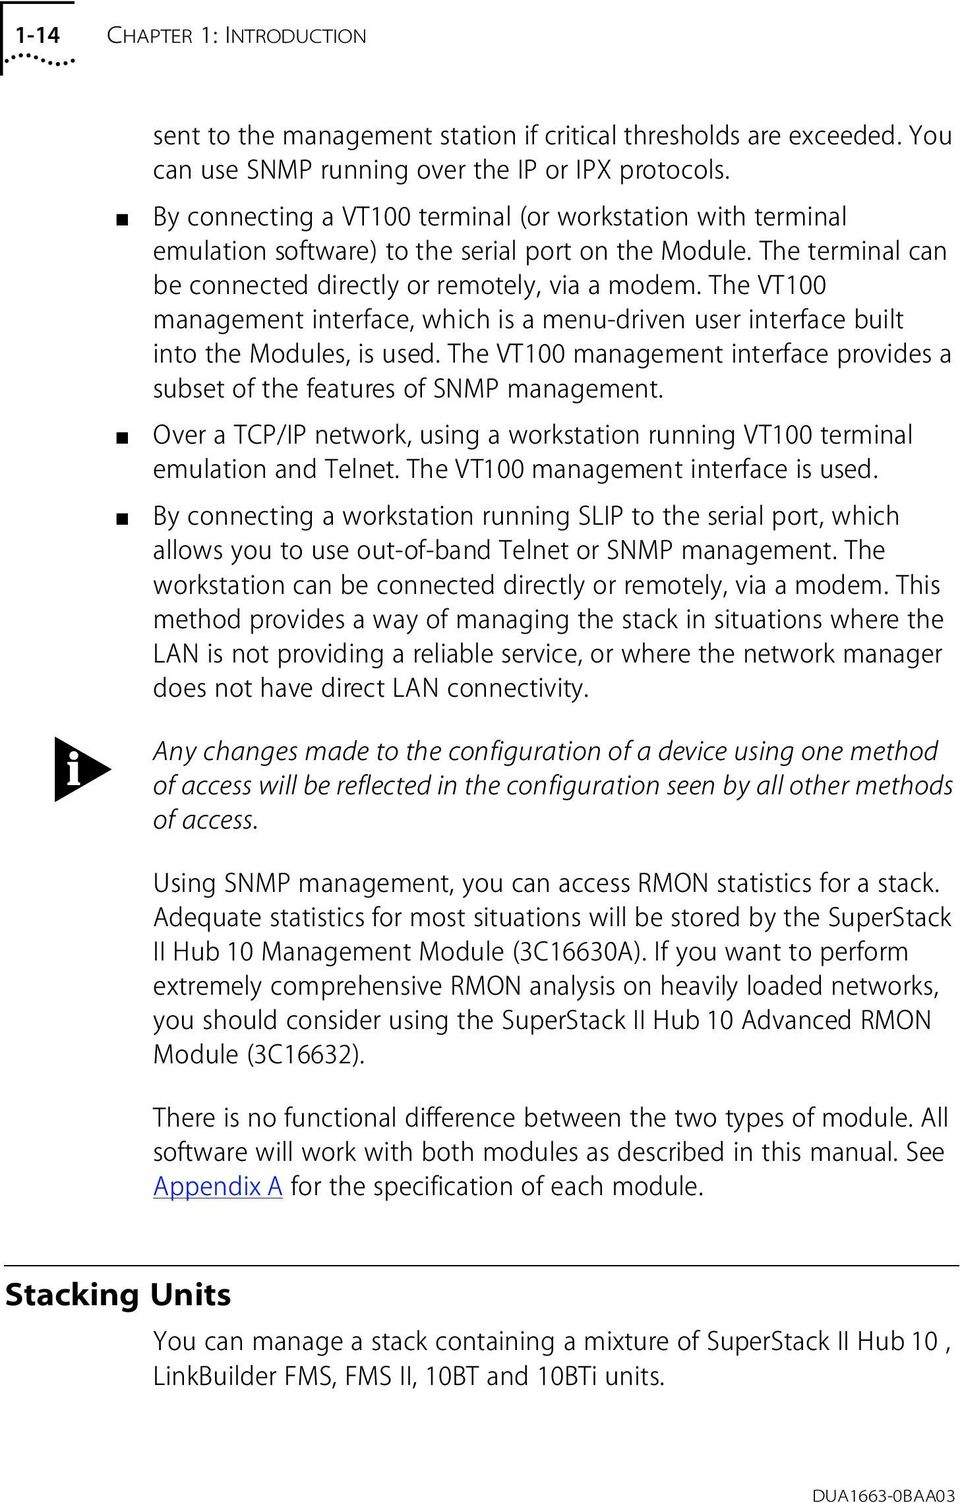 The VT100 management interface, which is a menu-driven user interface built into the Modules, is used. The VT100 management interface provides a subset of the features of SNMP management.